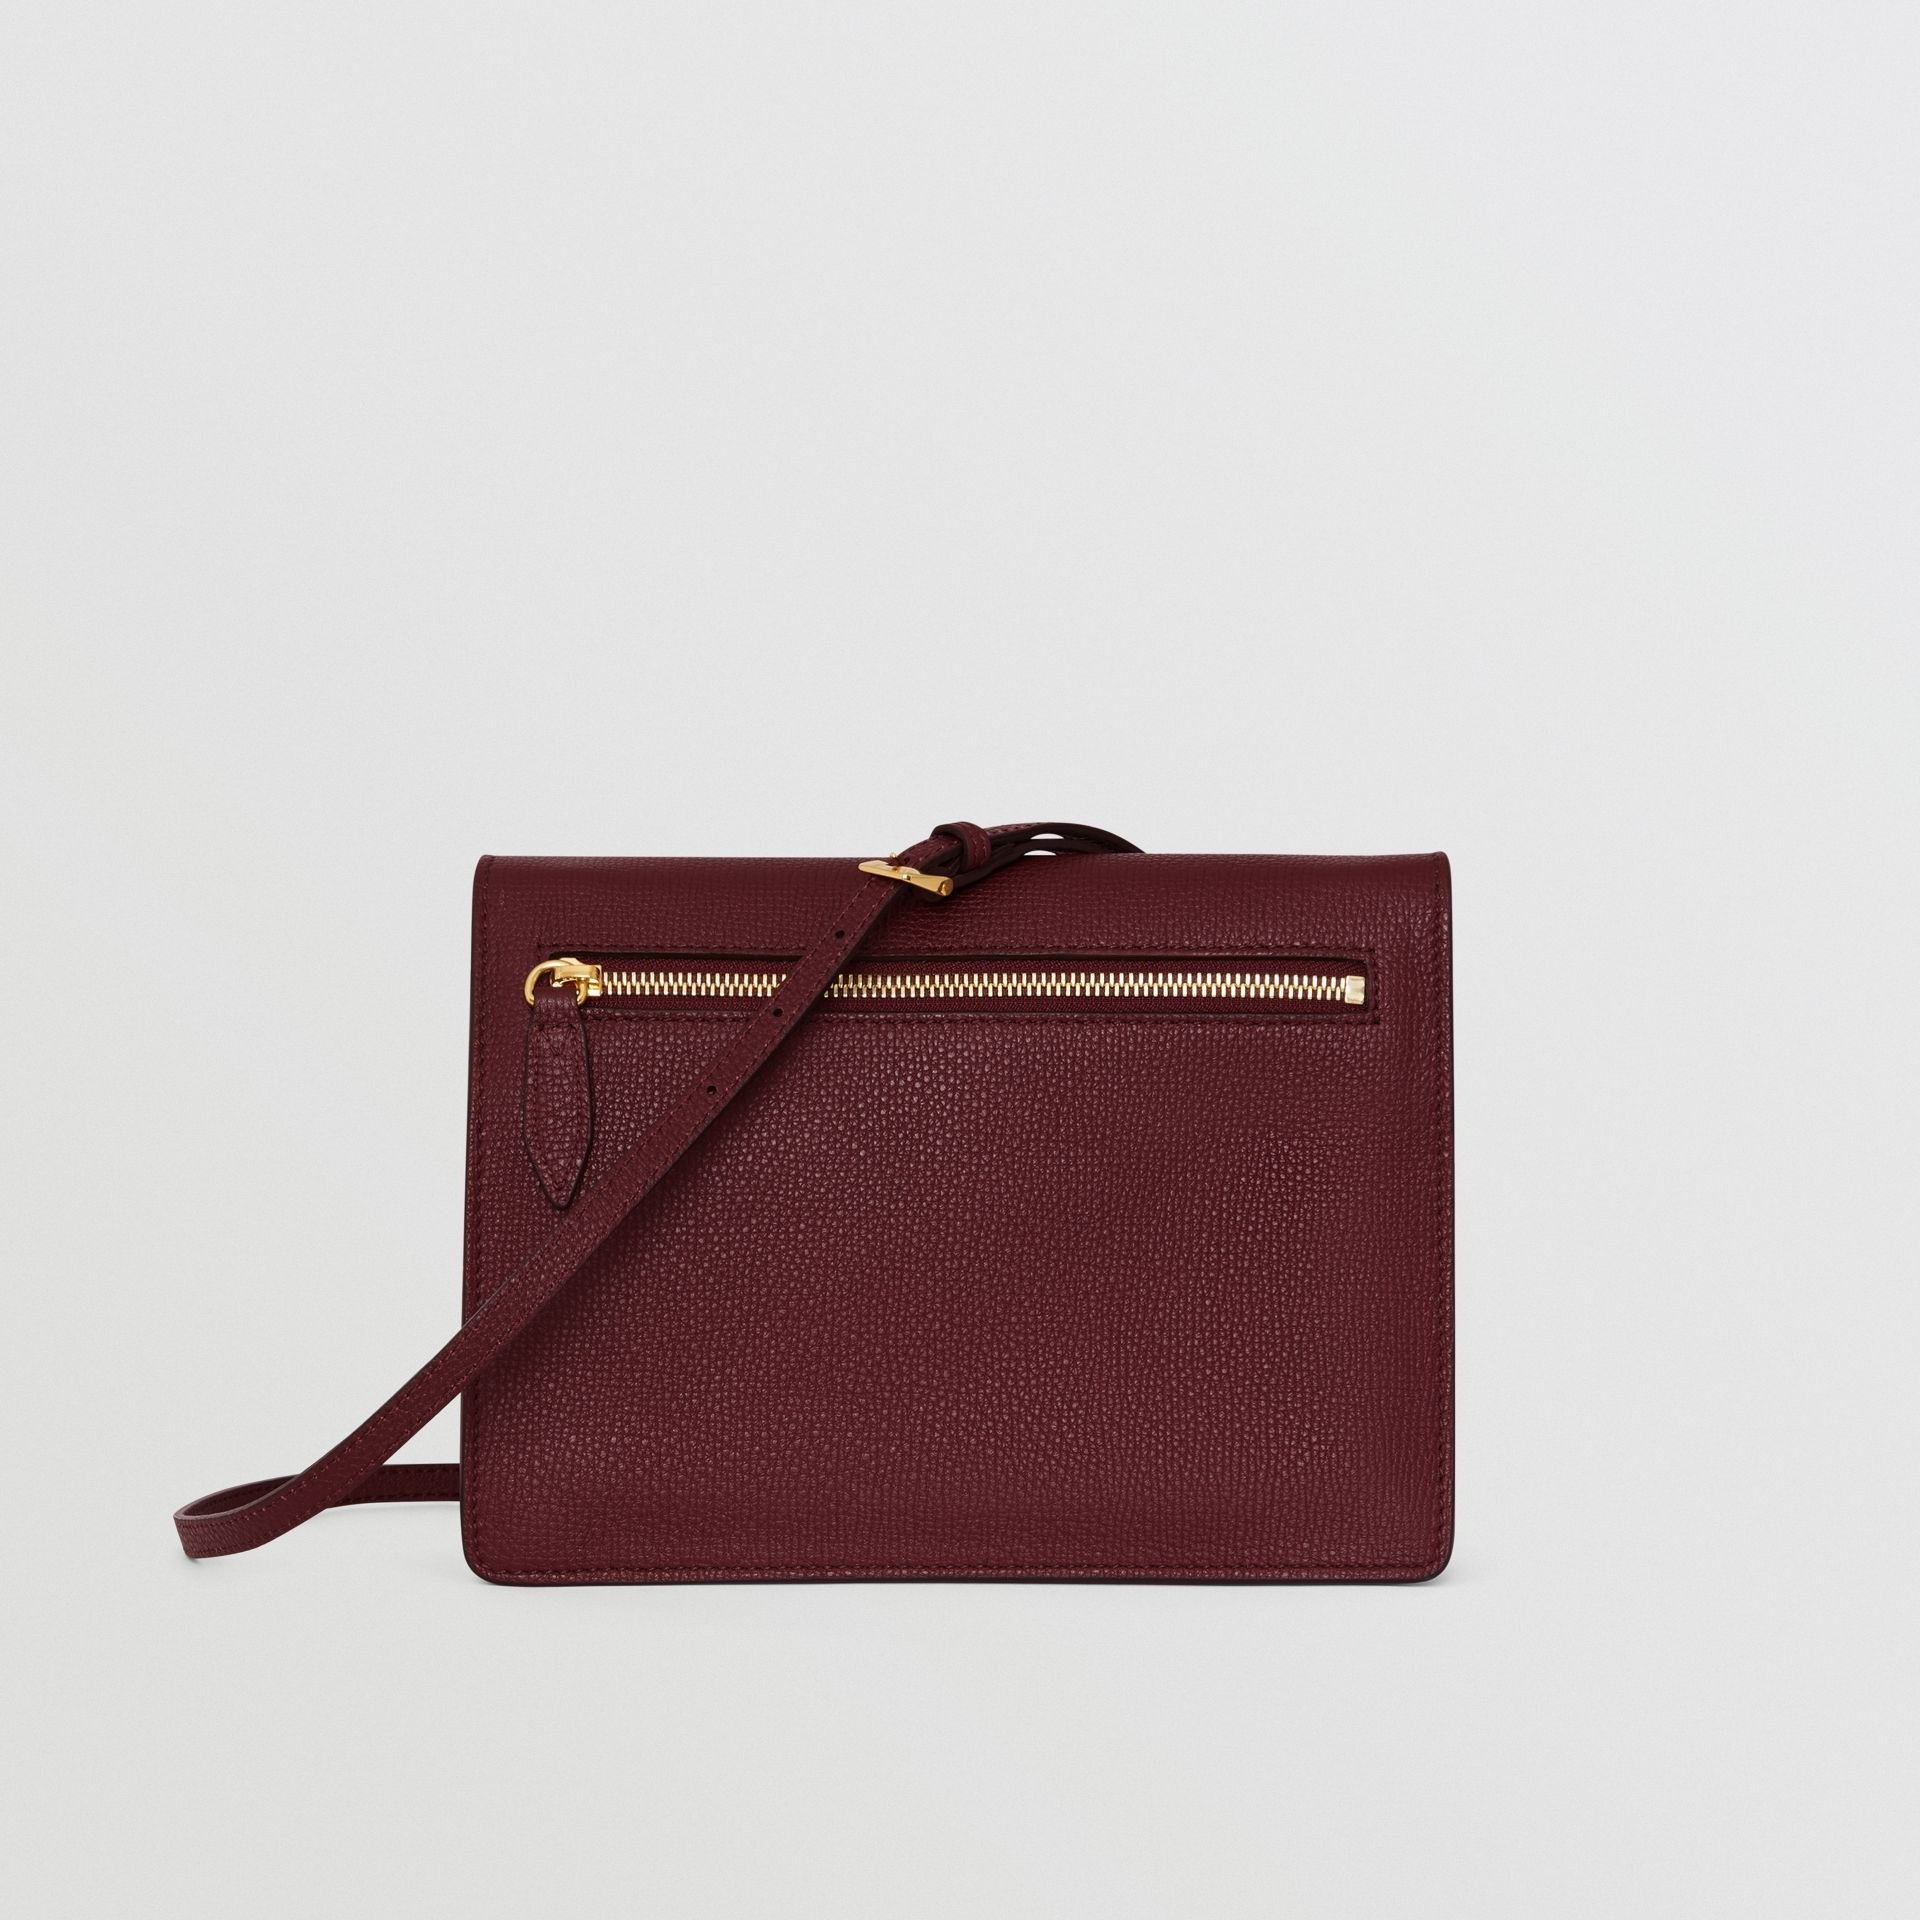 Small Leather Crossbody Bag in Mahogany Red - Women | Burberry United States - gallery image 7